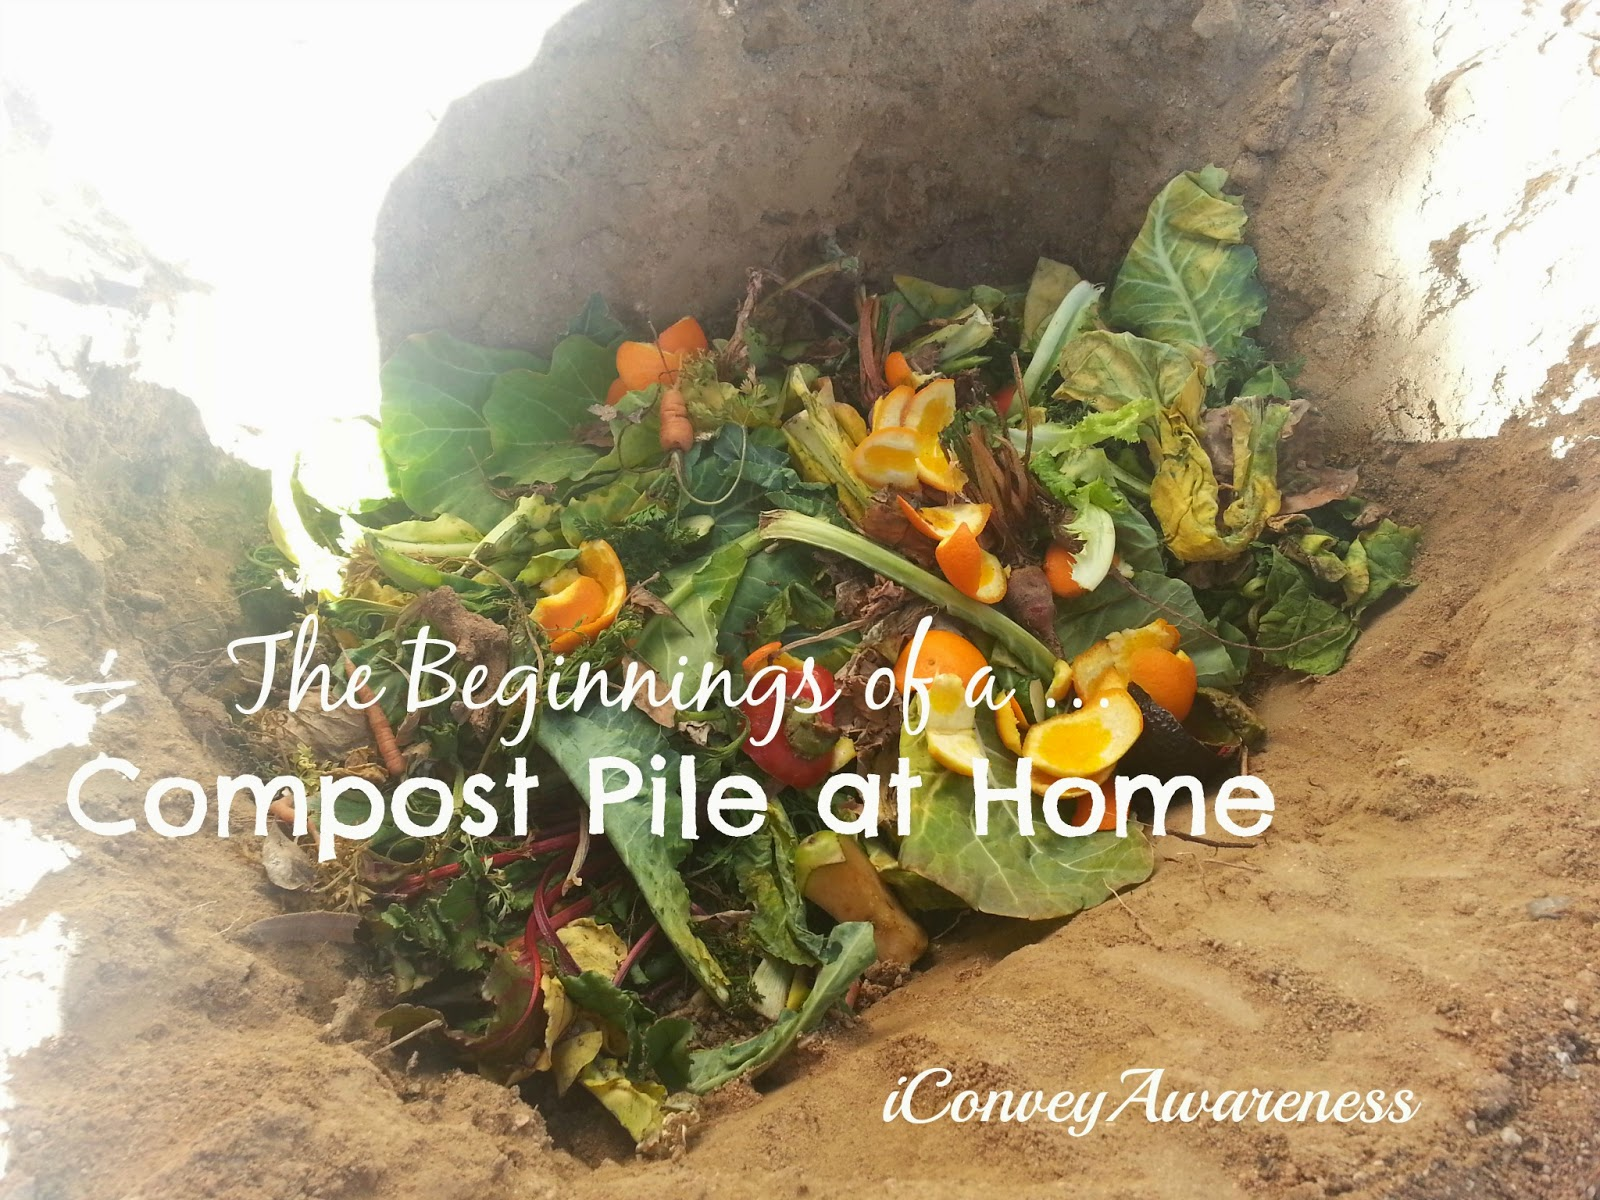 Convey Awareness | My first compost pile in the ground!